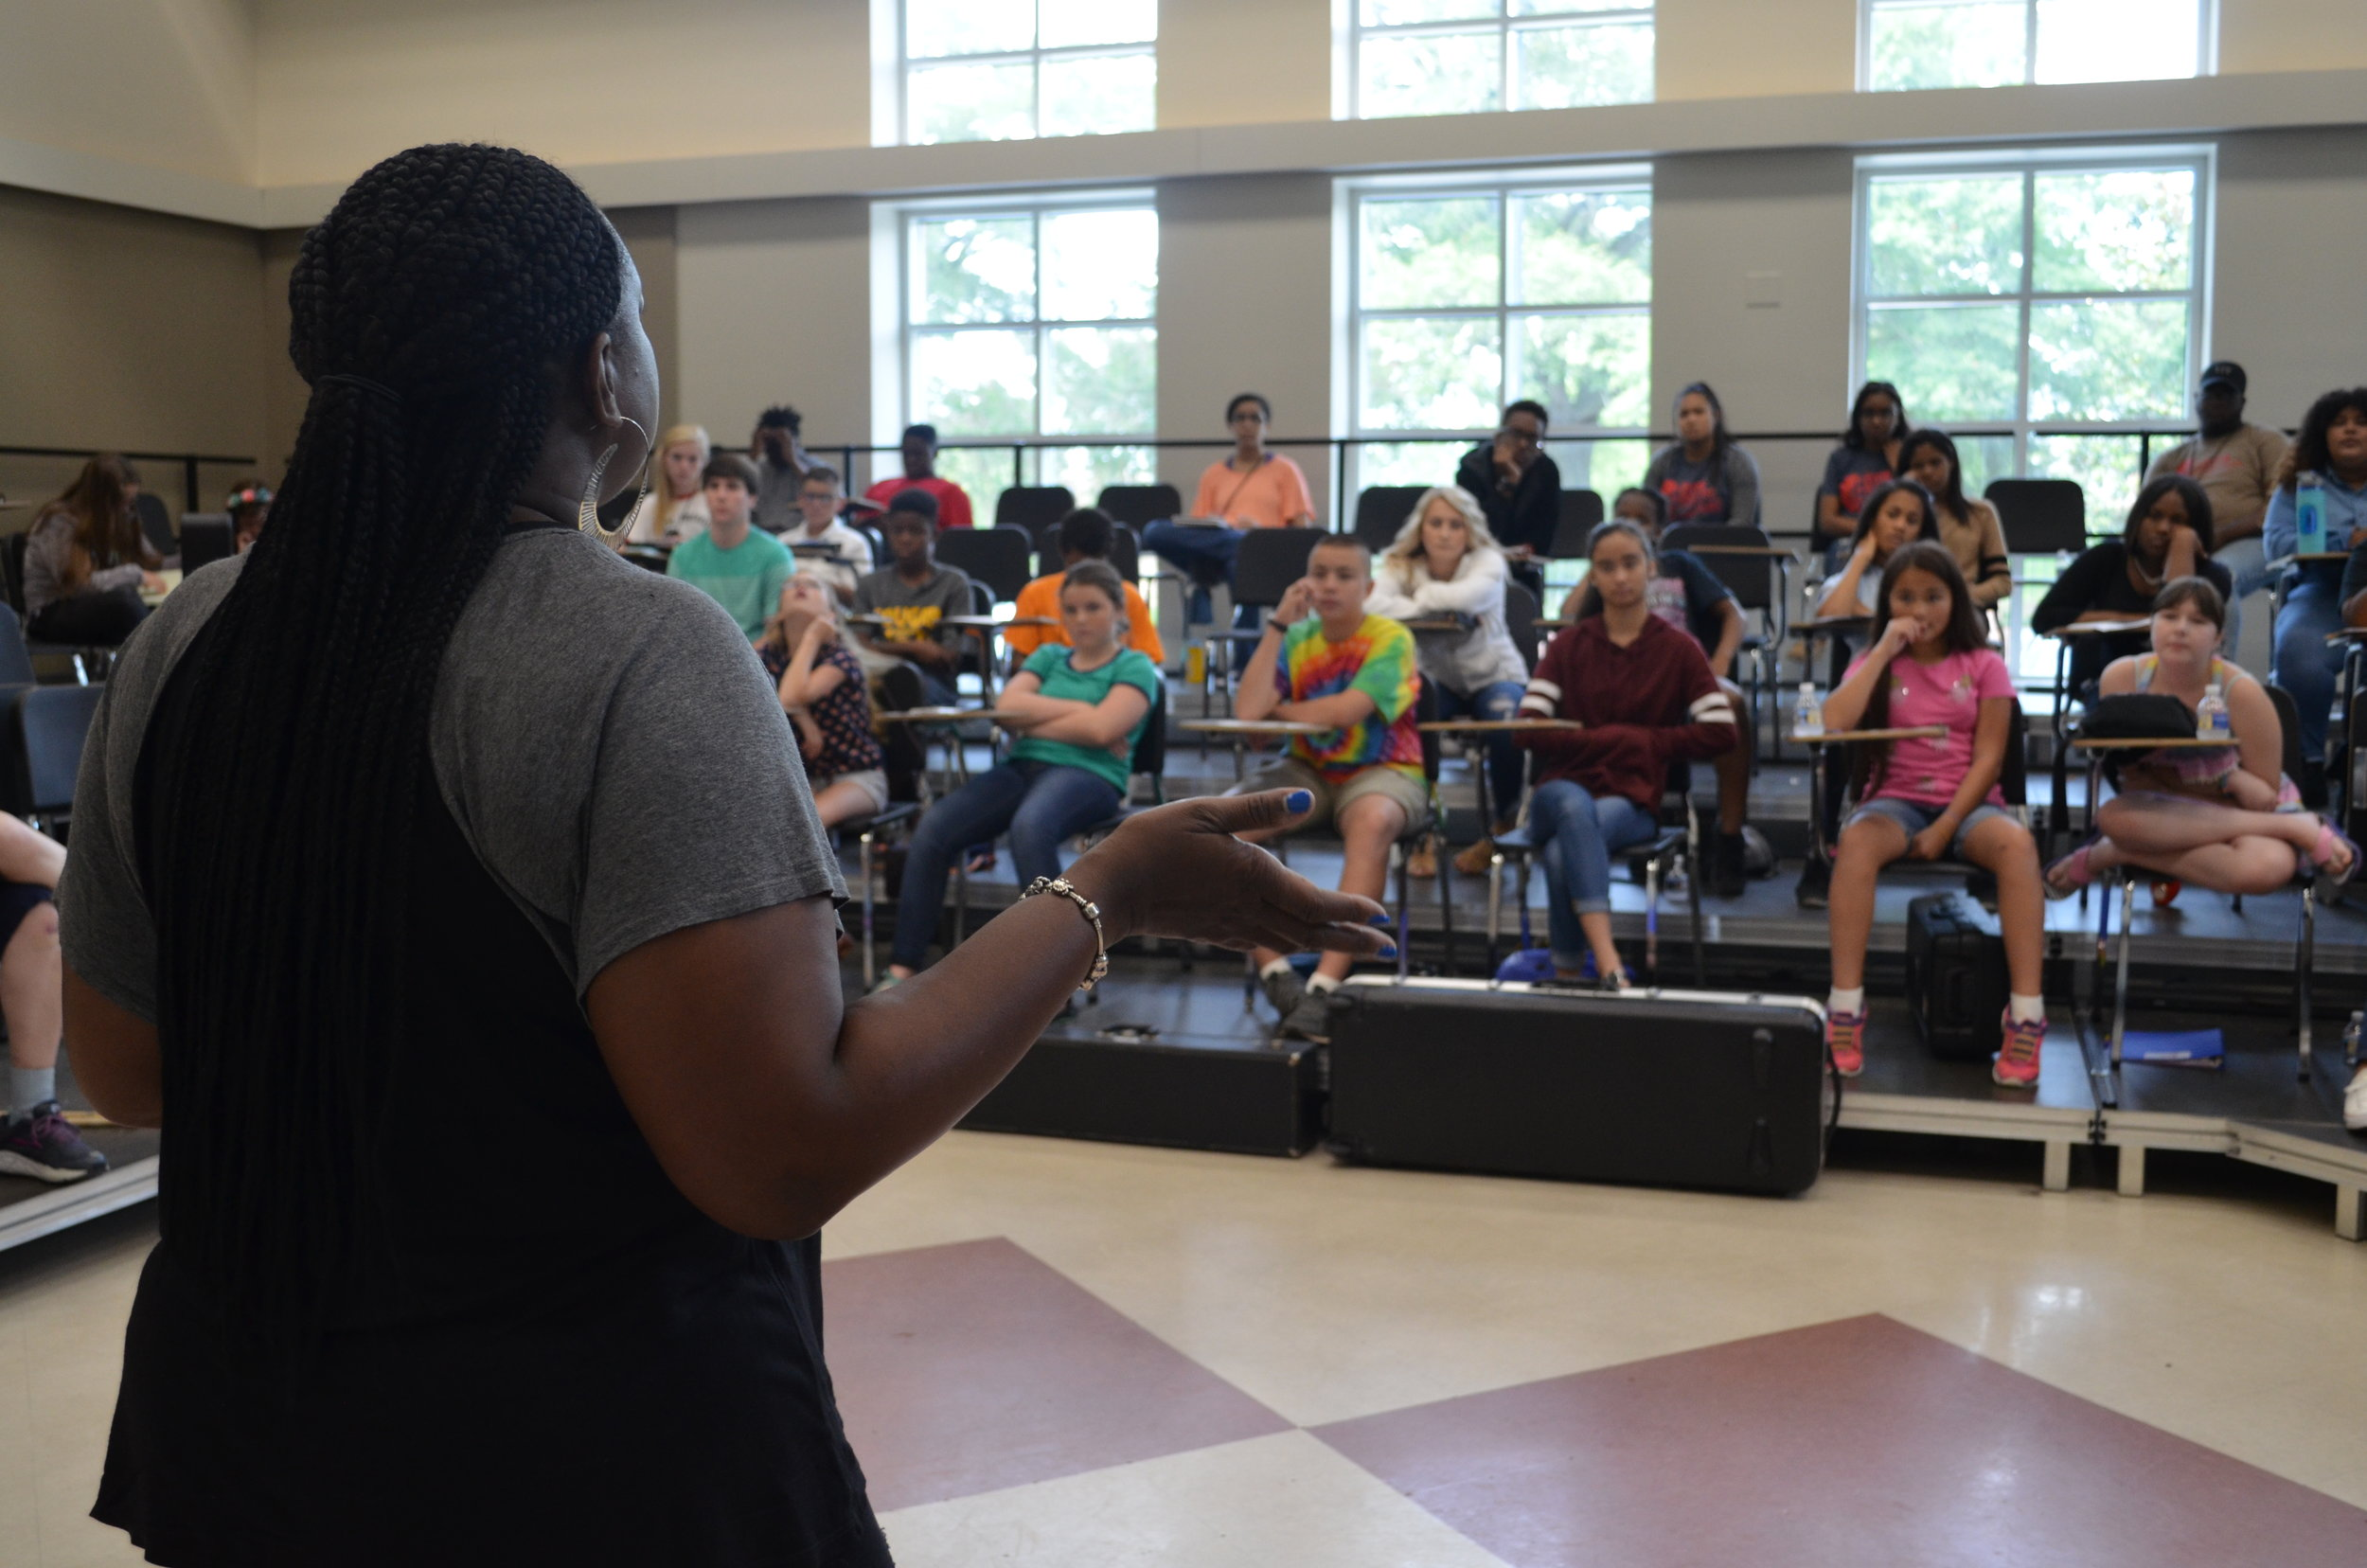 She educated our campers about the music industry and even rapped for us.